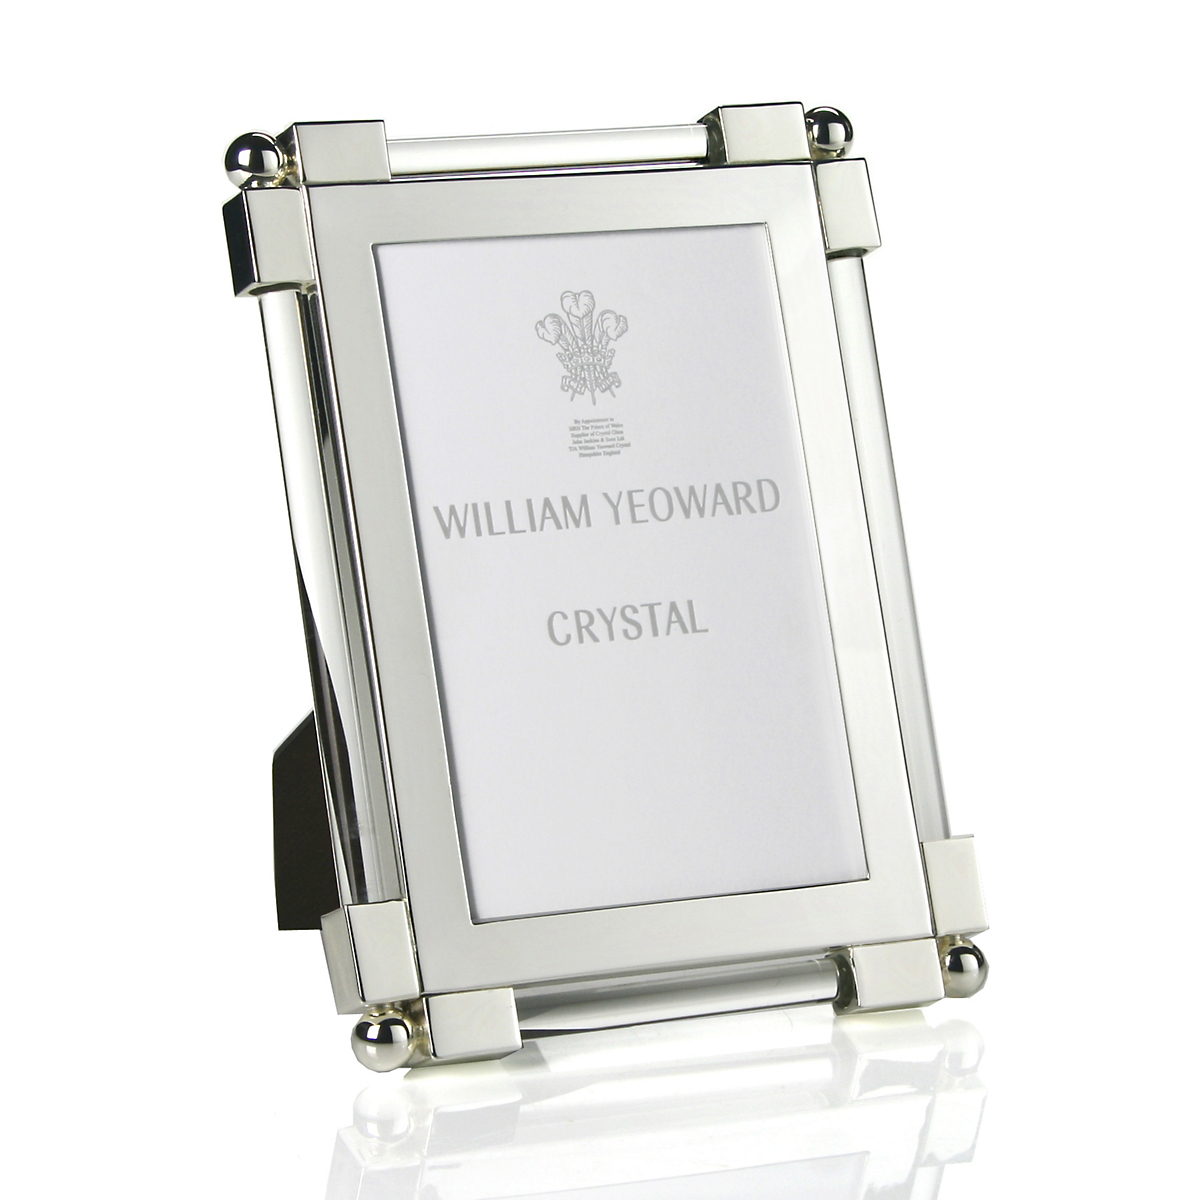 William Yeoward Crystal Classic Glass Clear Frame, 4x6